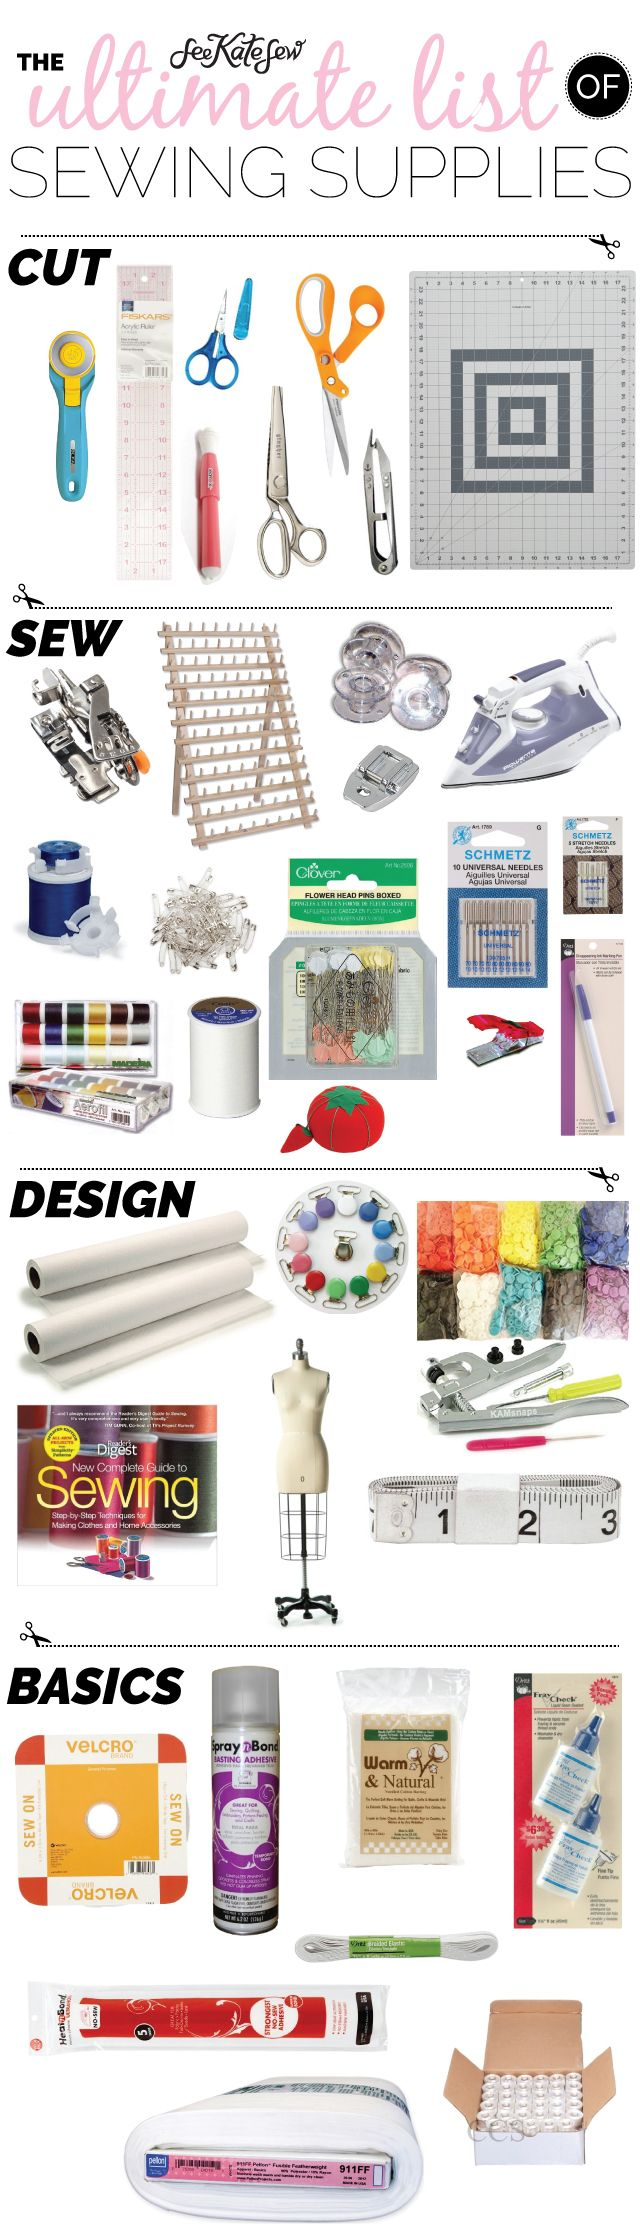 my FAVORITE sewing supplies | Sewing projects, Sewing ...